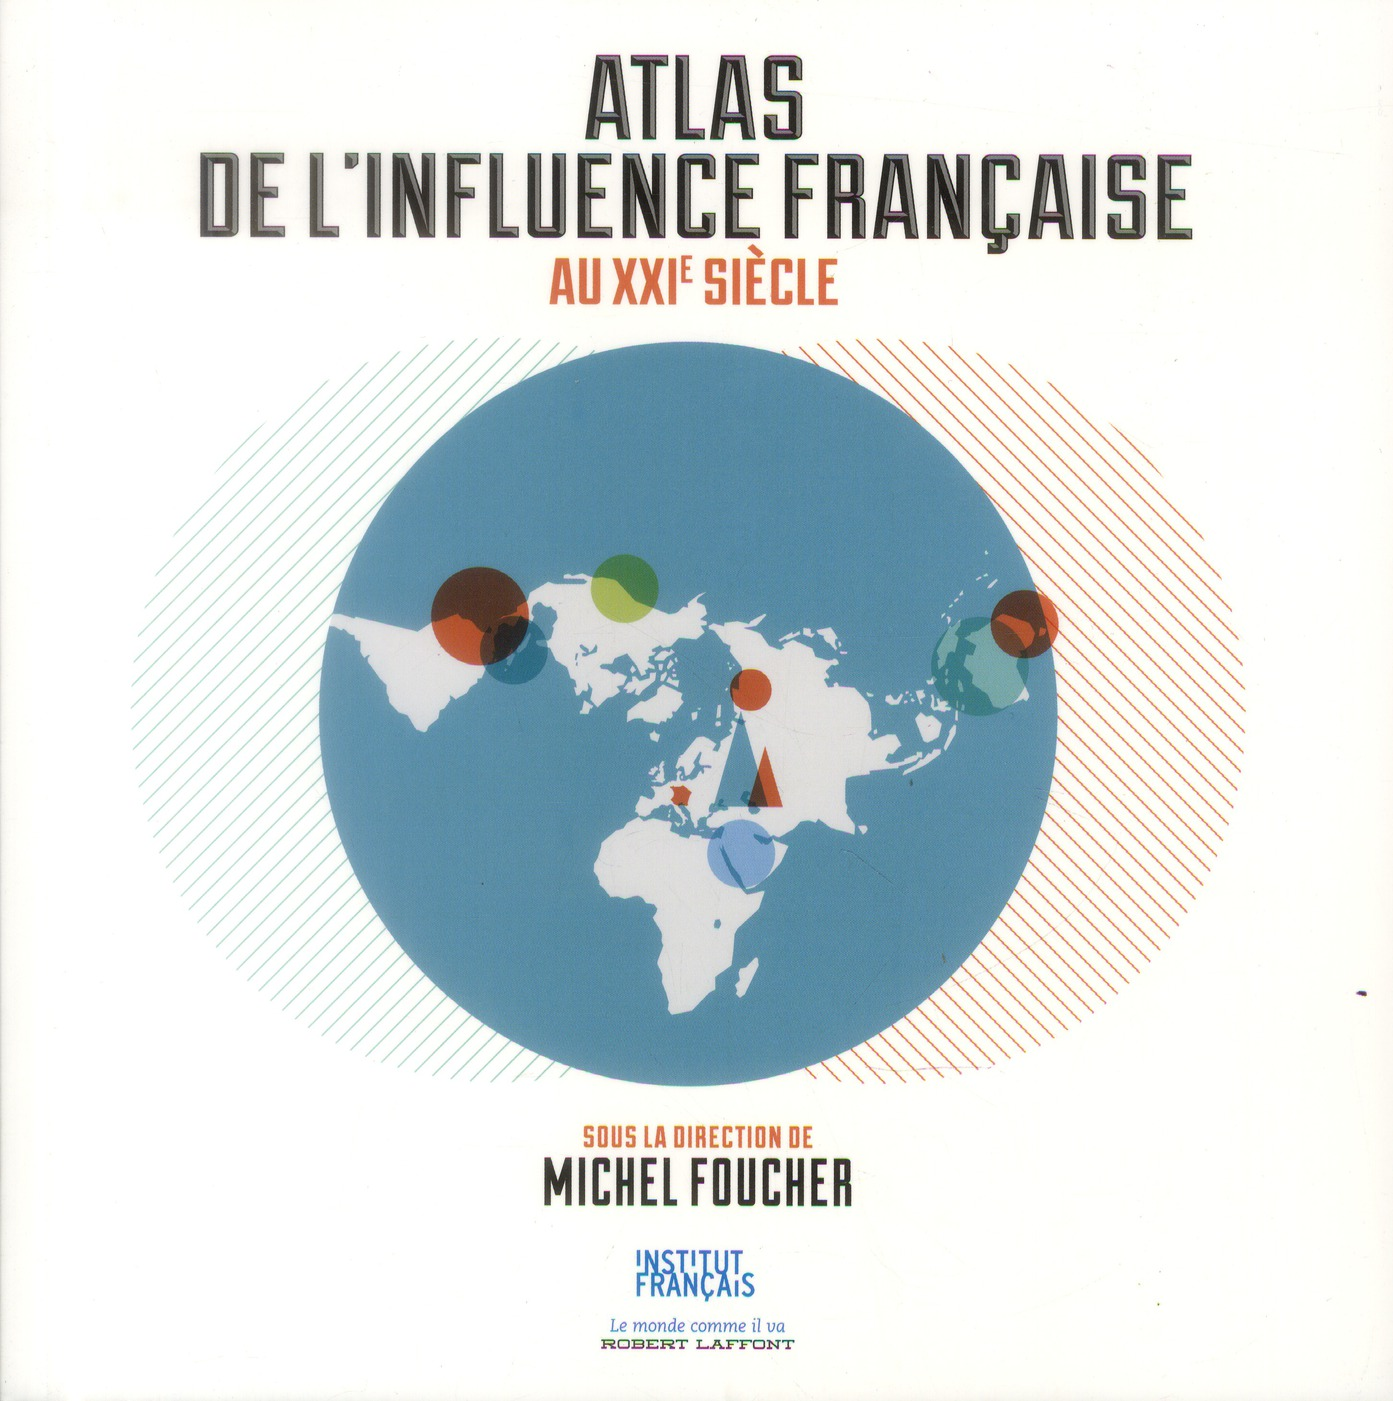 Atlas de l'influence de la france au xxie siècle